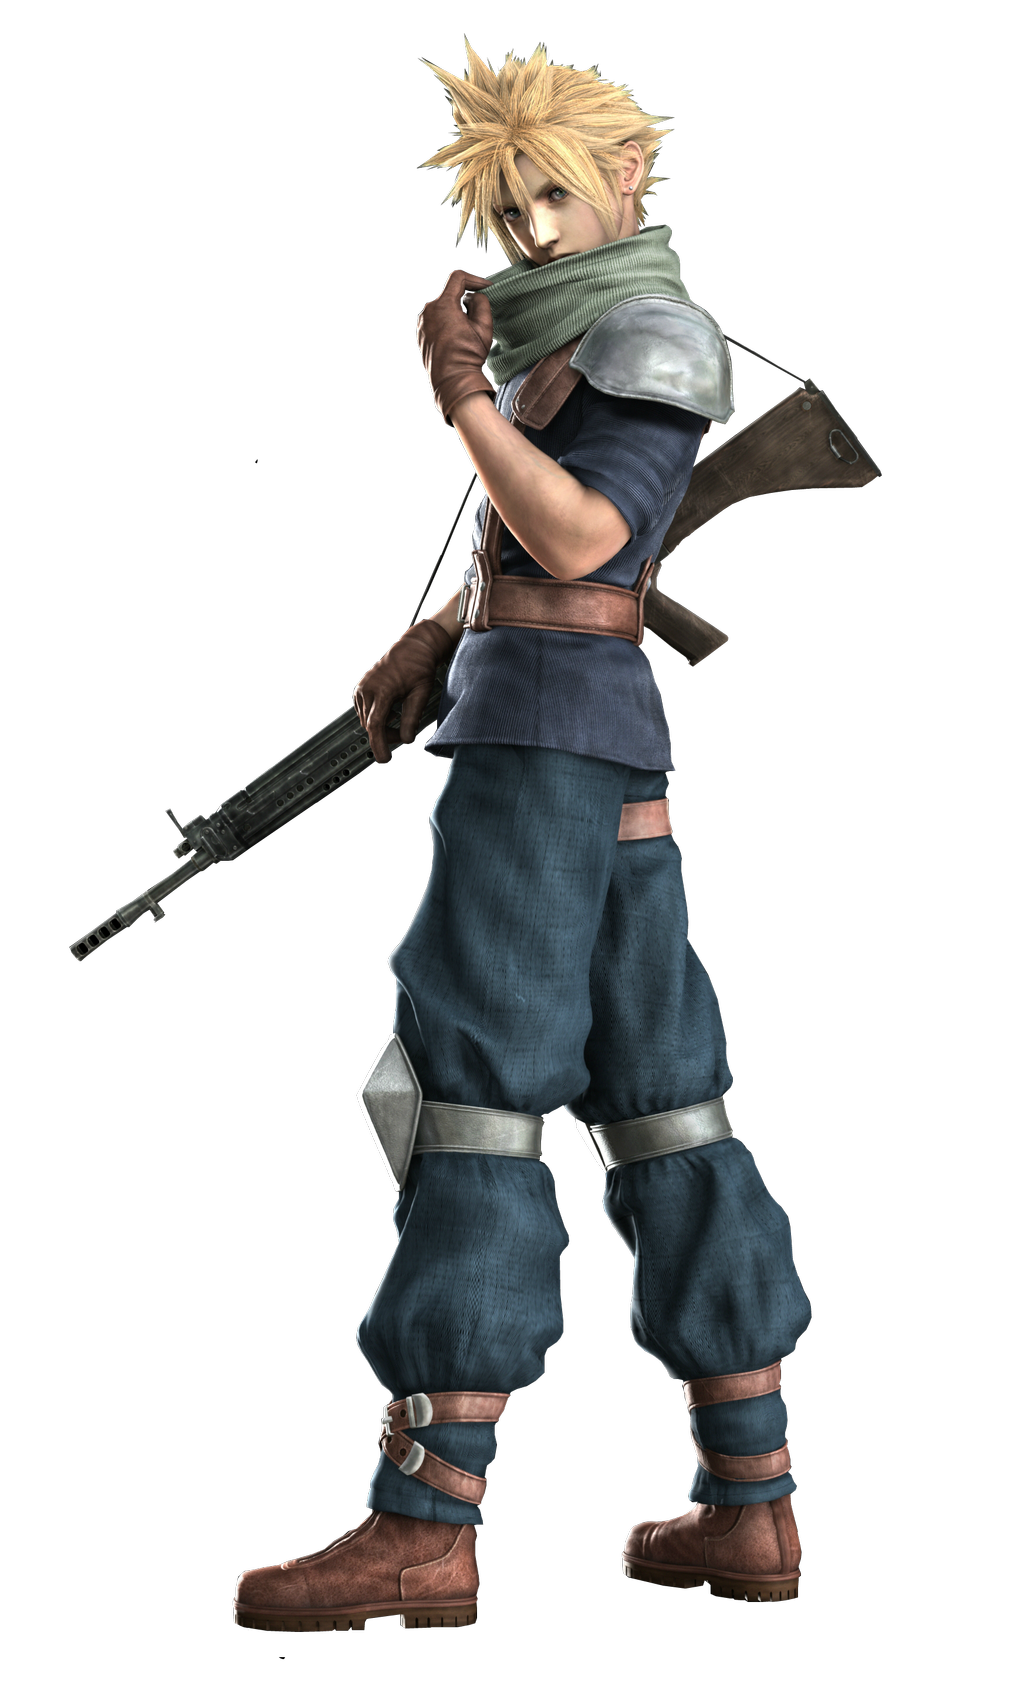 cloud strife the final fantasy wiki 10 years of having more final fantasy information than. Black Bedroom Furniture Sets. Home Design Ideas